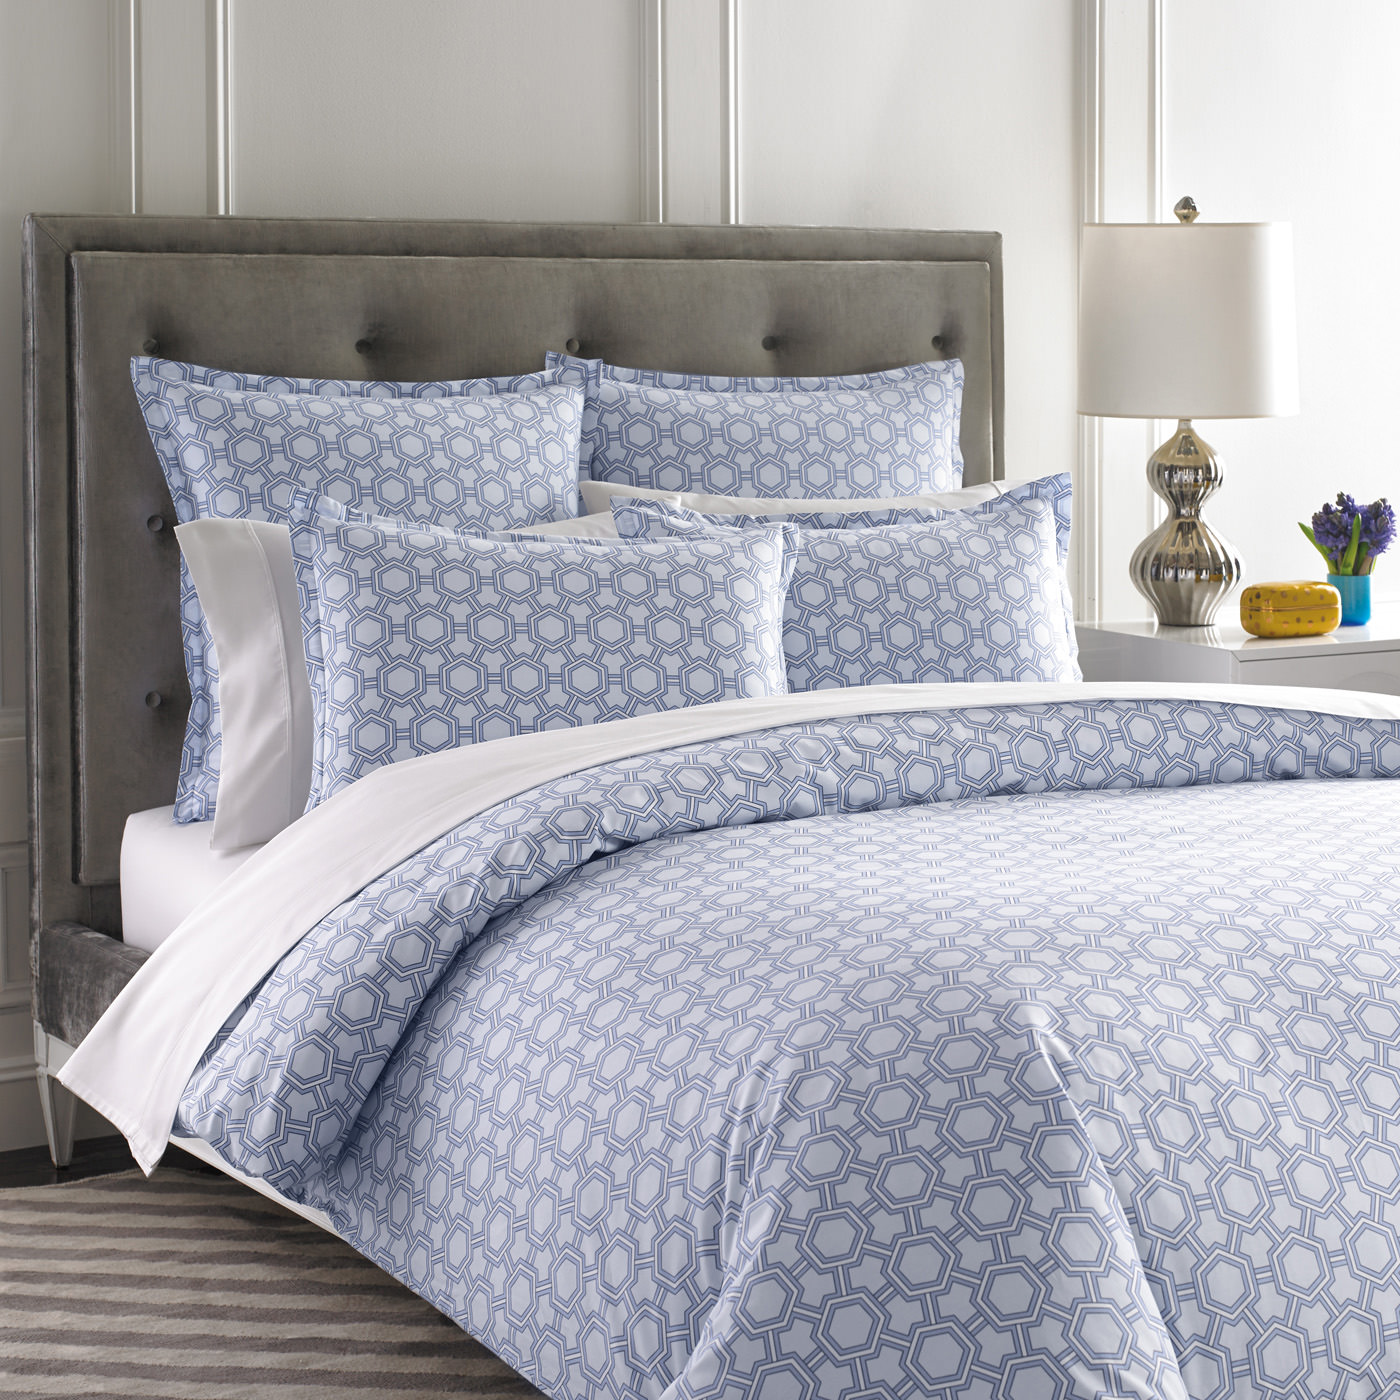 Jonathan Adler Bedding Sets For Chic Bedrooms Homesfeed